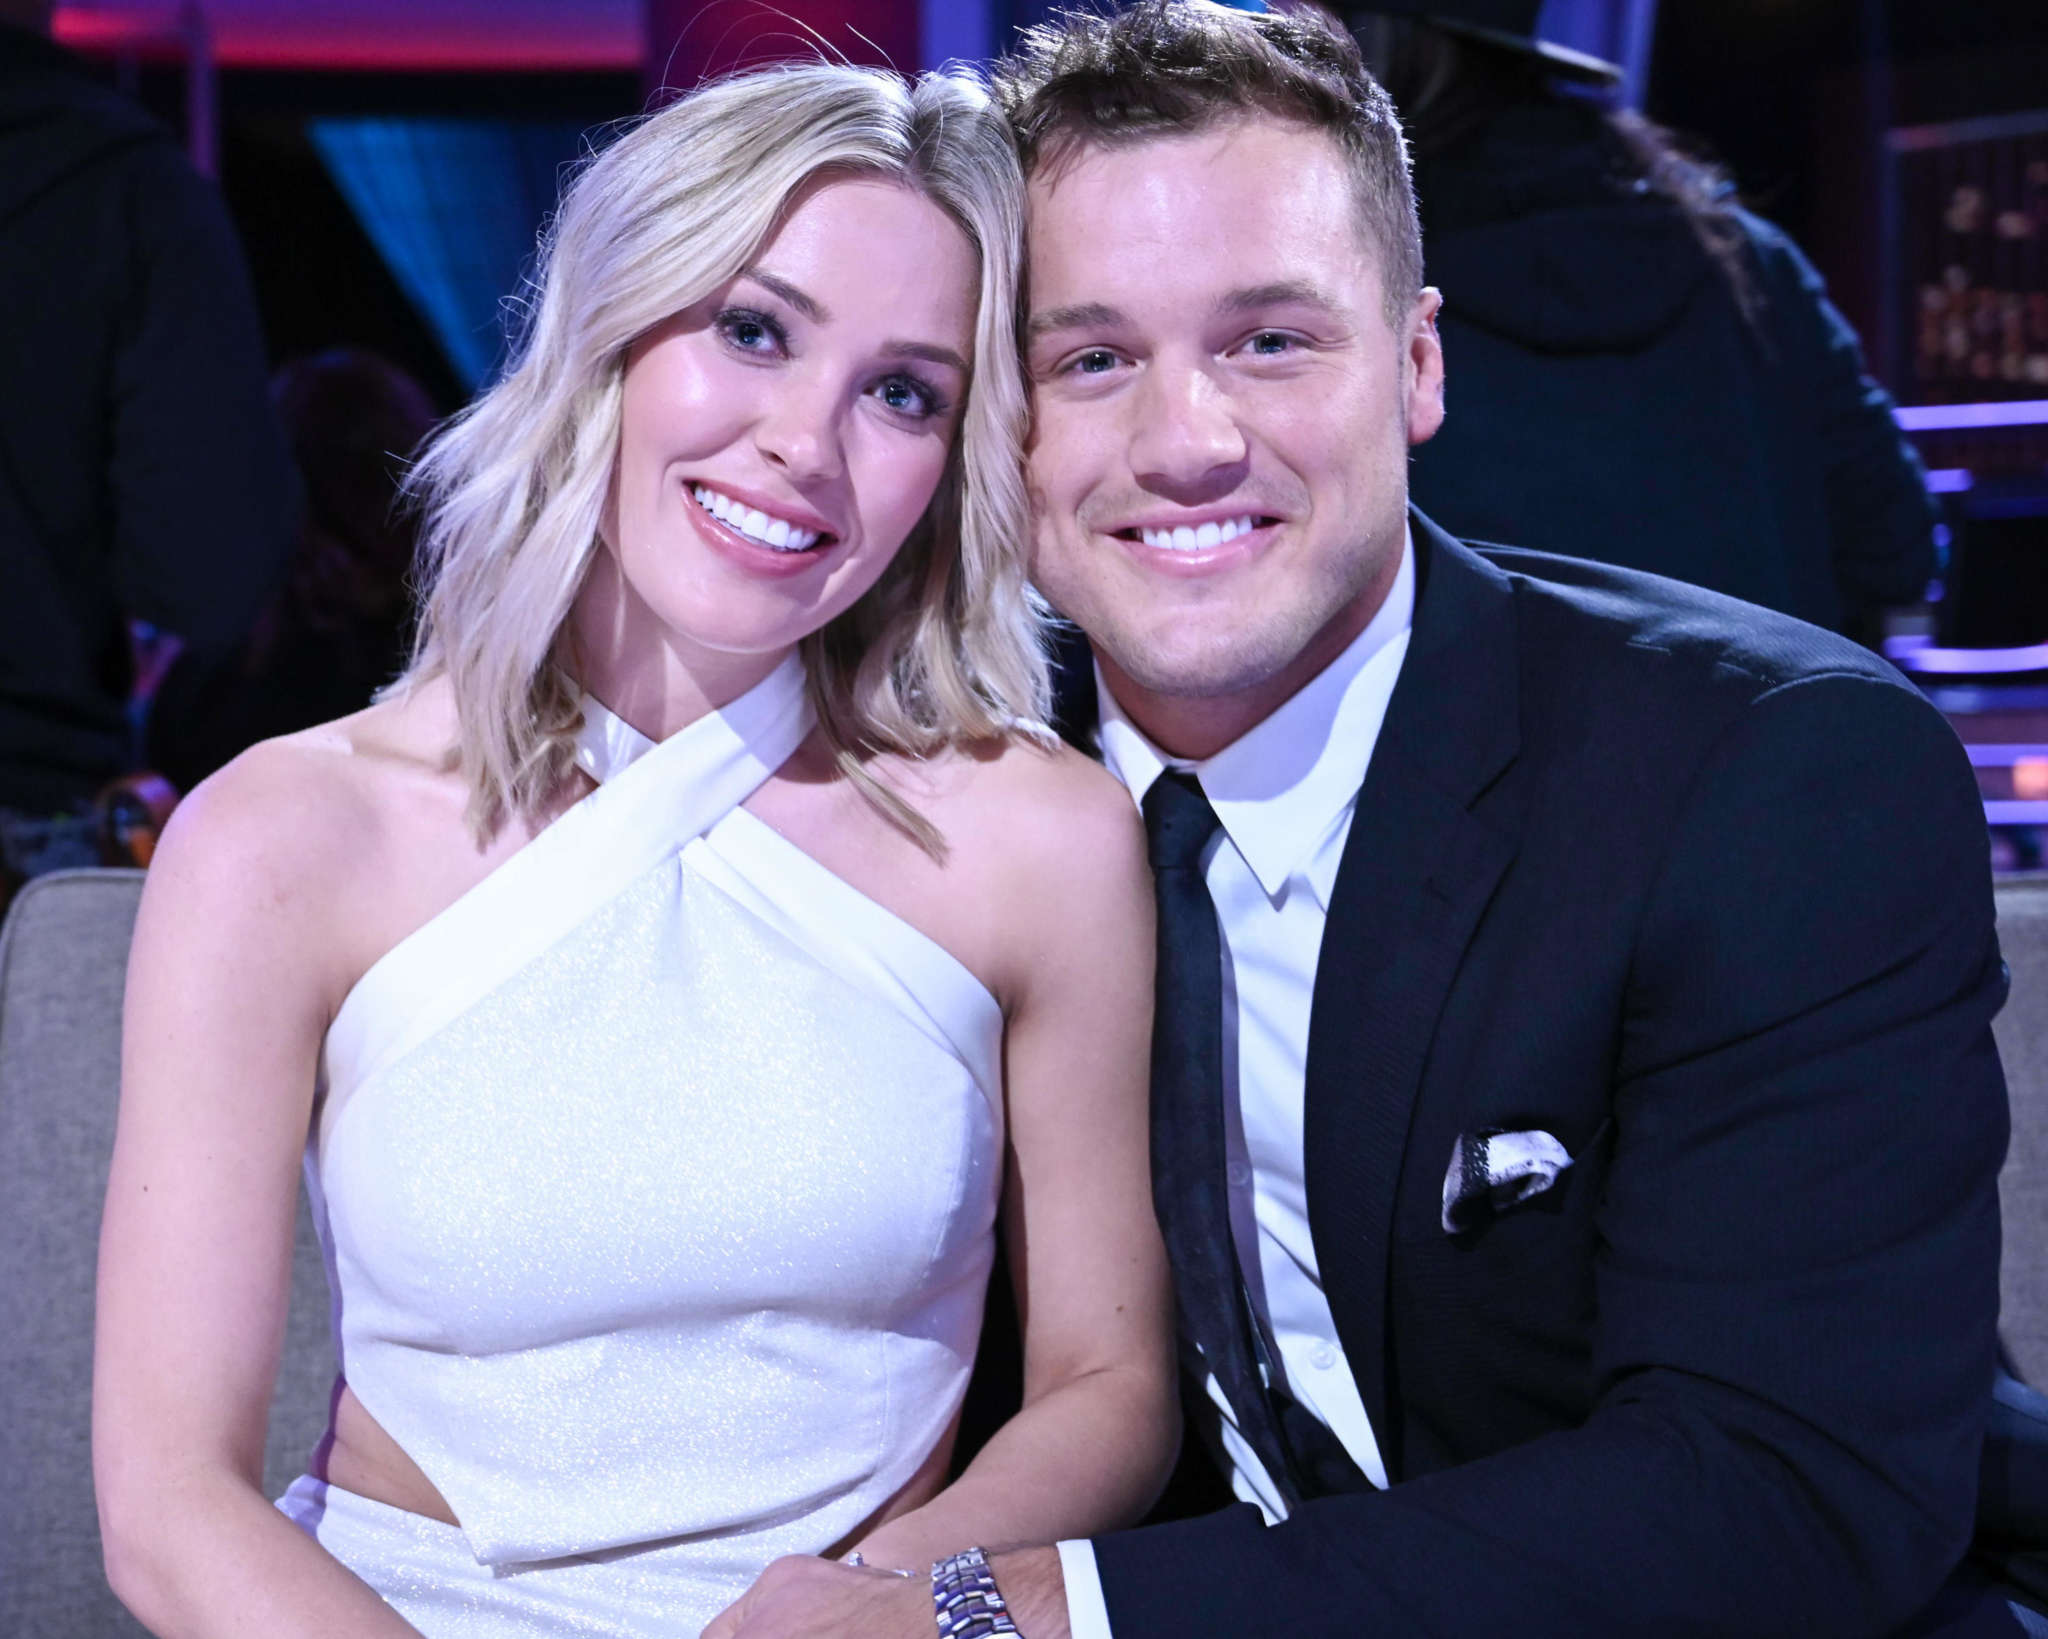 Colton Underwood And Cassie Randolph Are Over – Check Out Their Announcements!